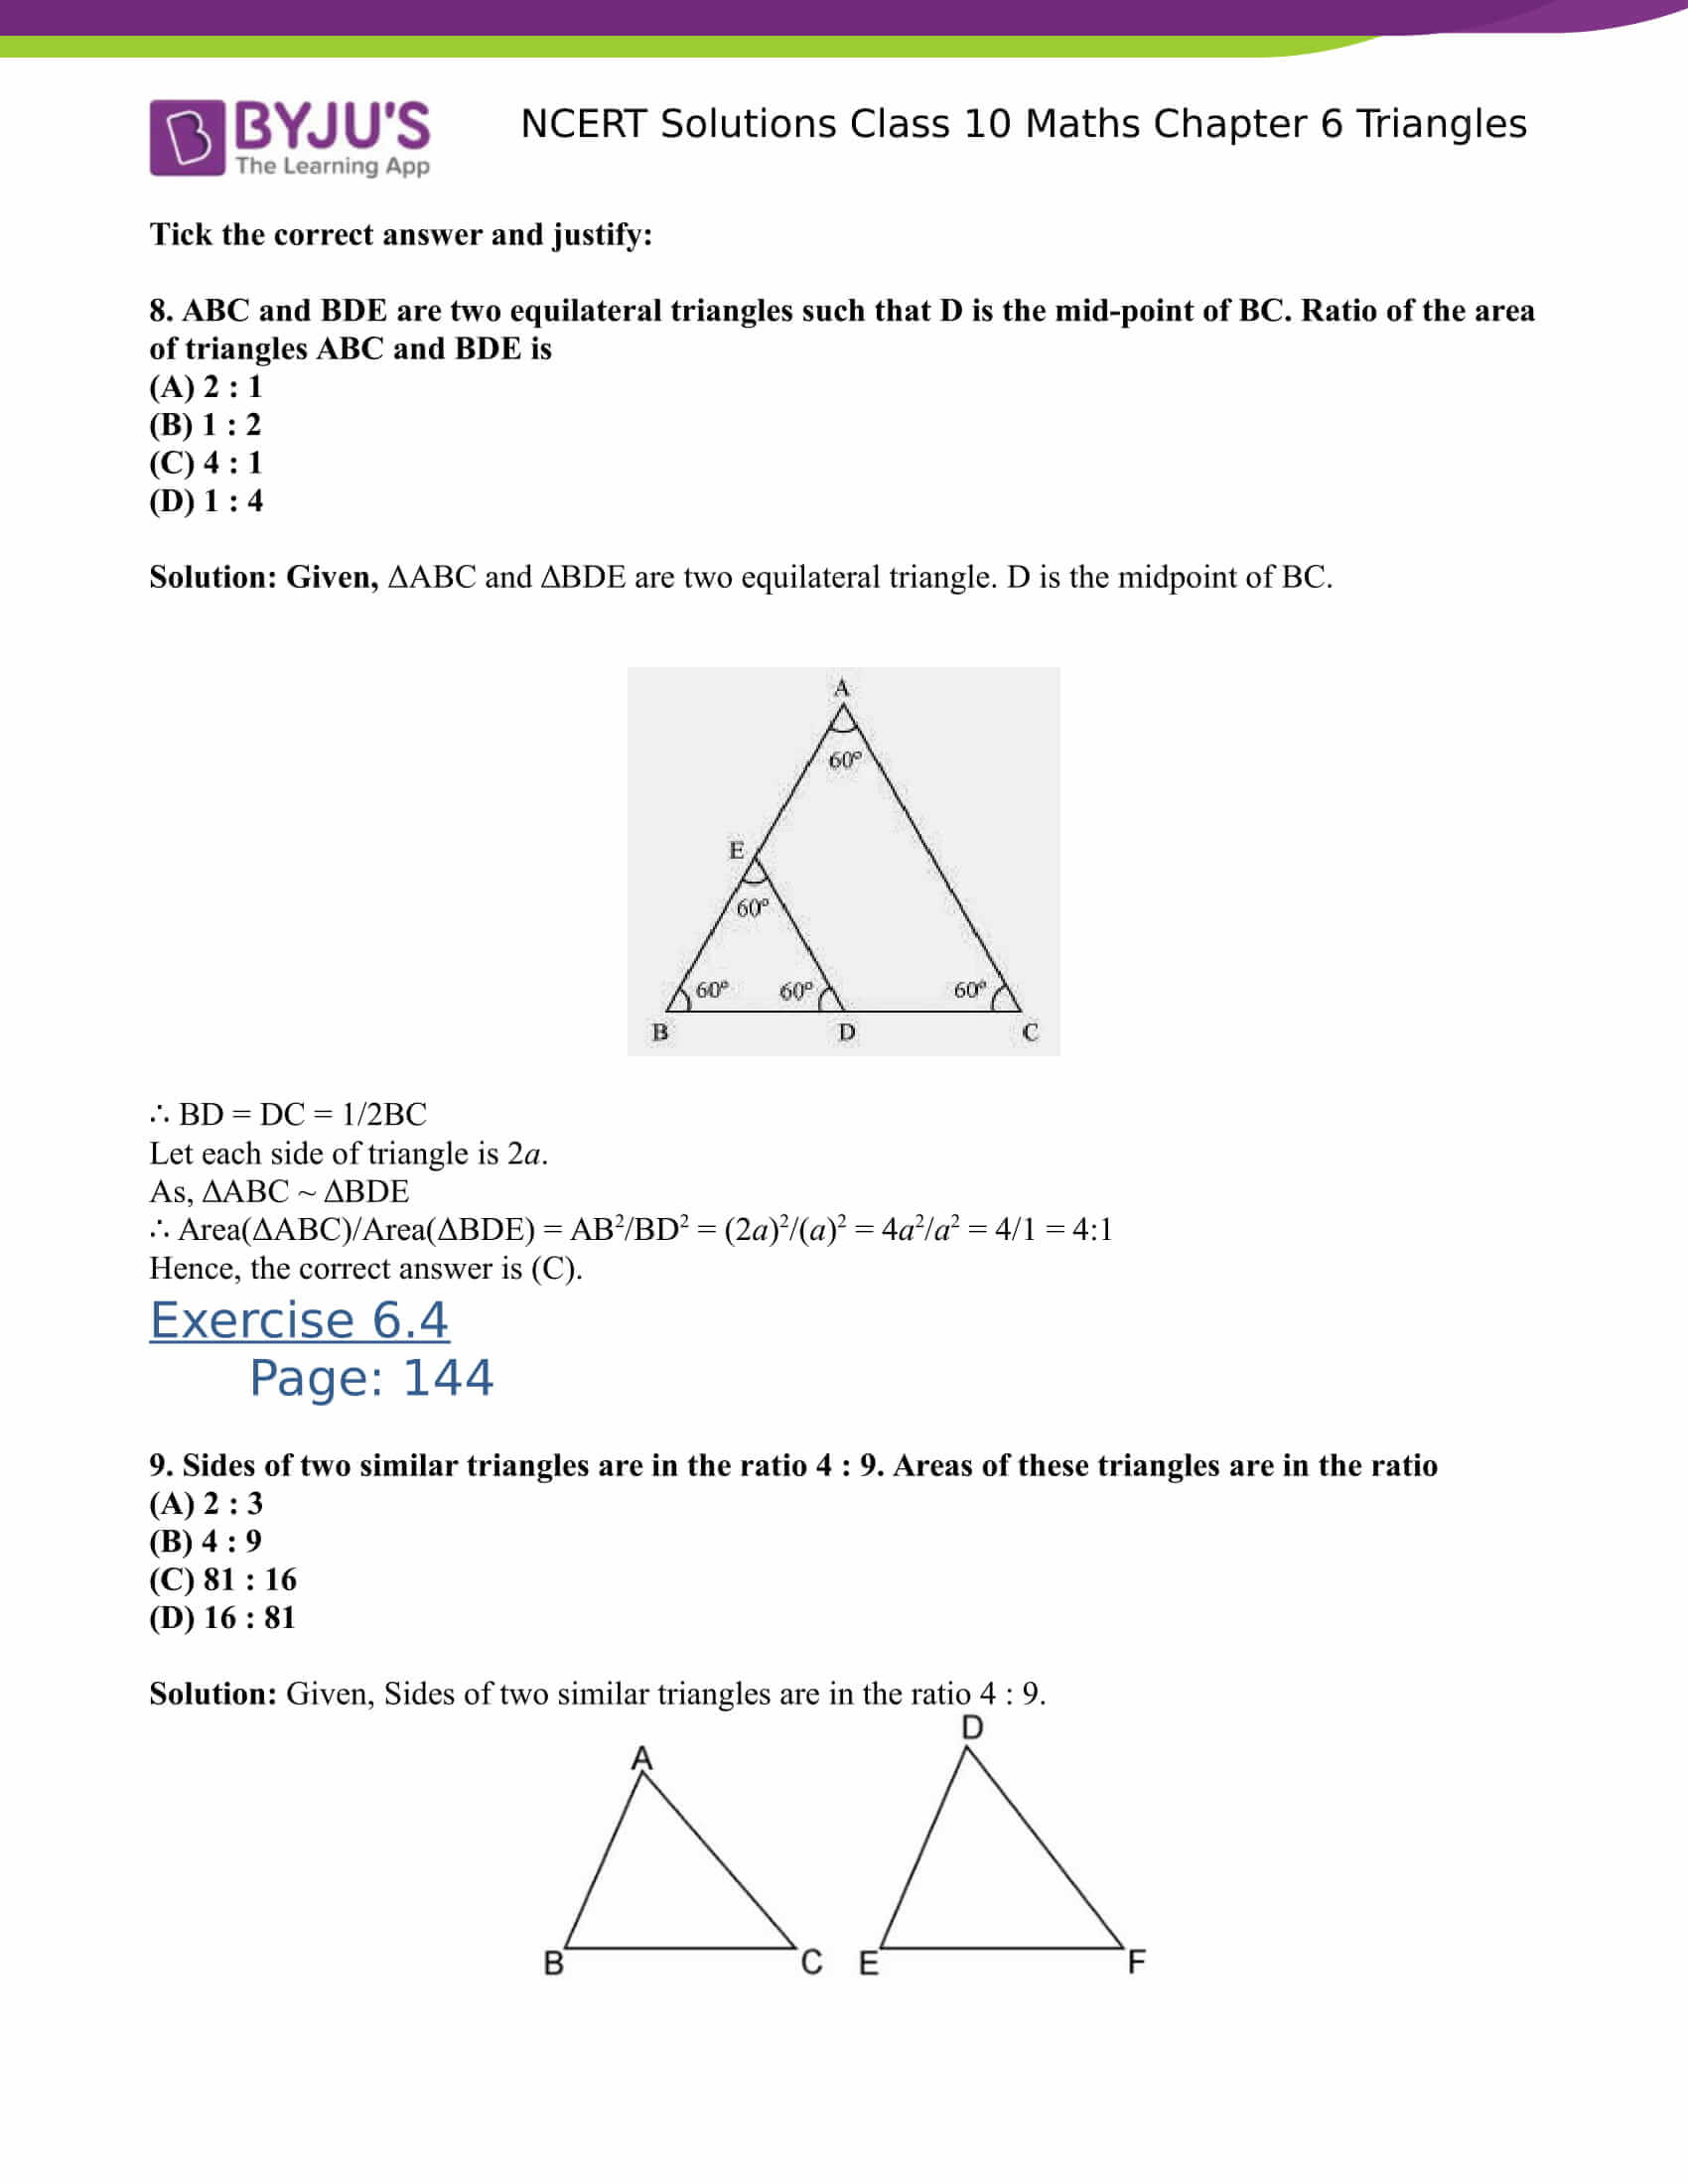 NCERT Solutions for class 10 Maths Chapter 6 Triangles Part 32